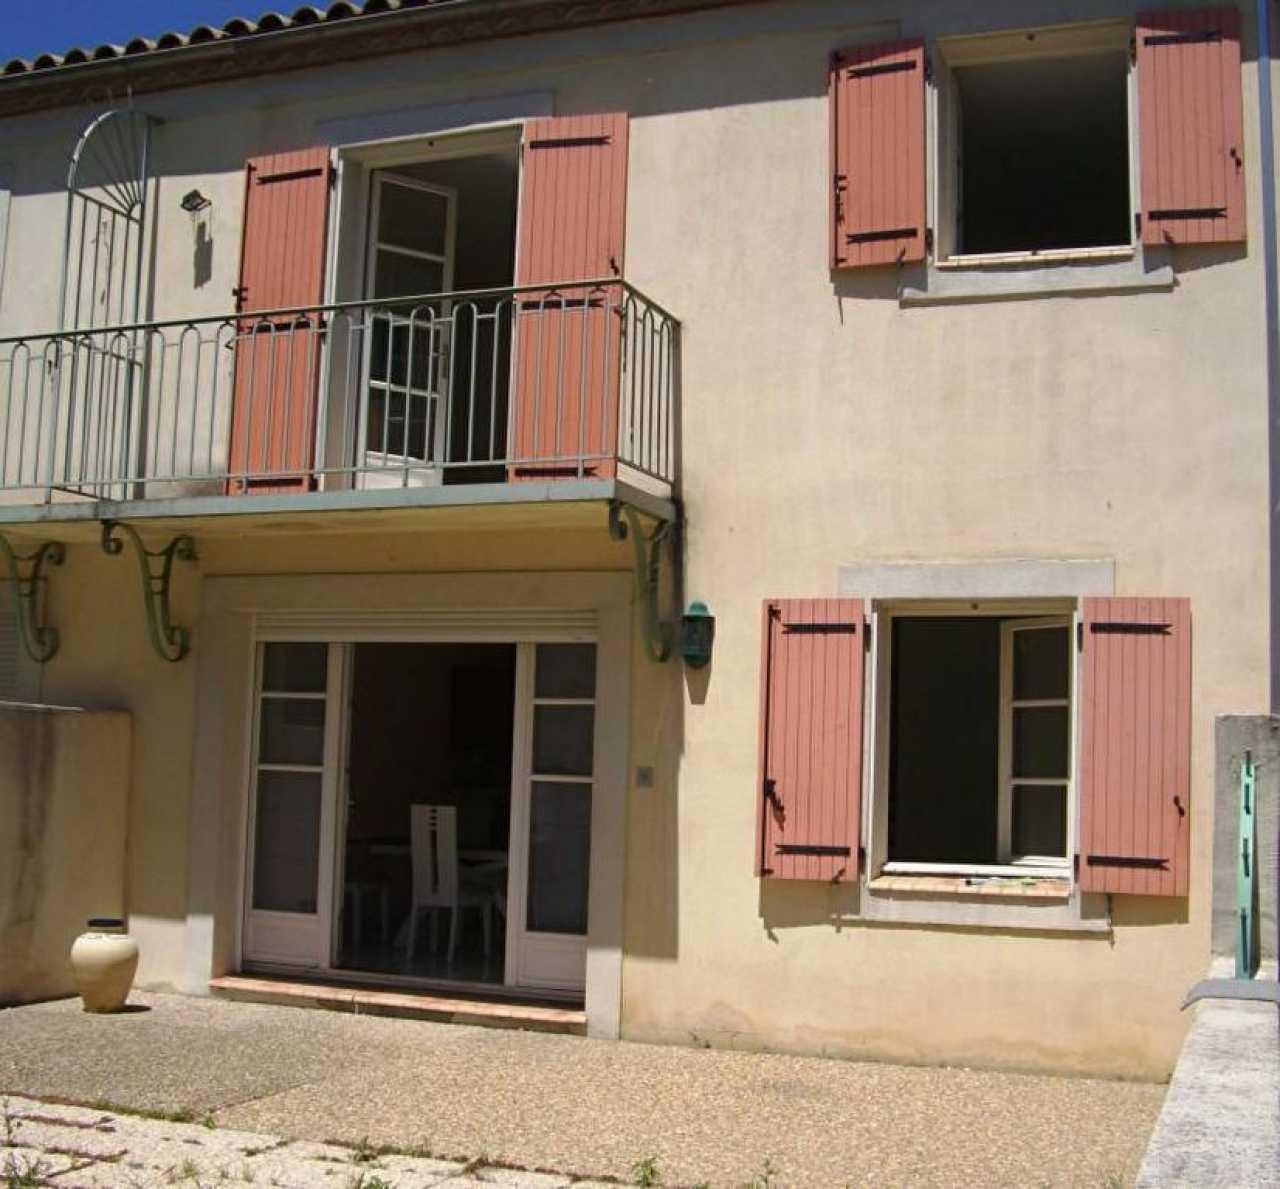 Apartment CARCASSONNE | 671 € / month